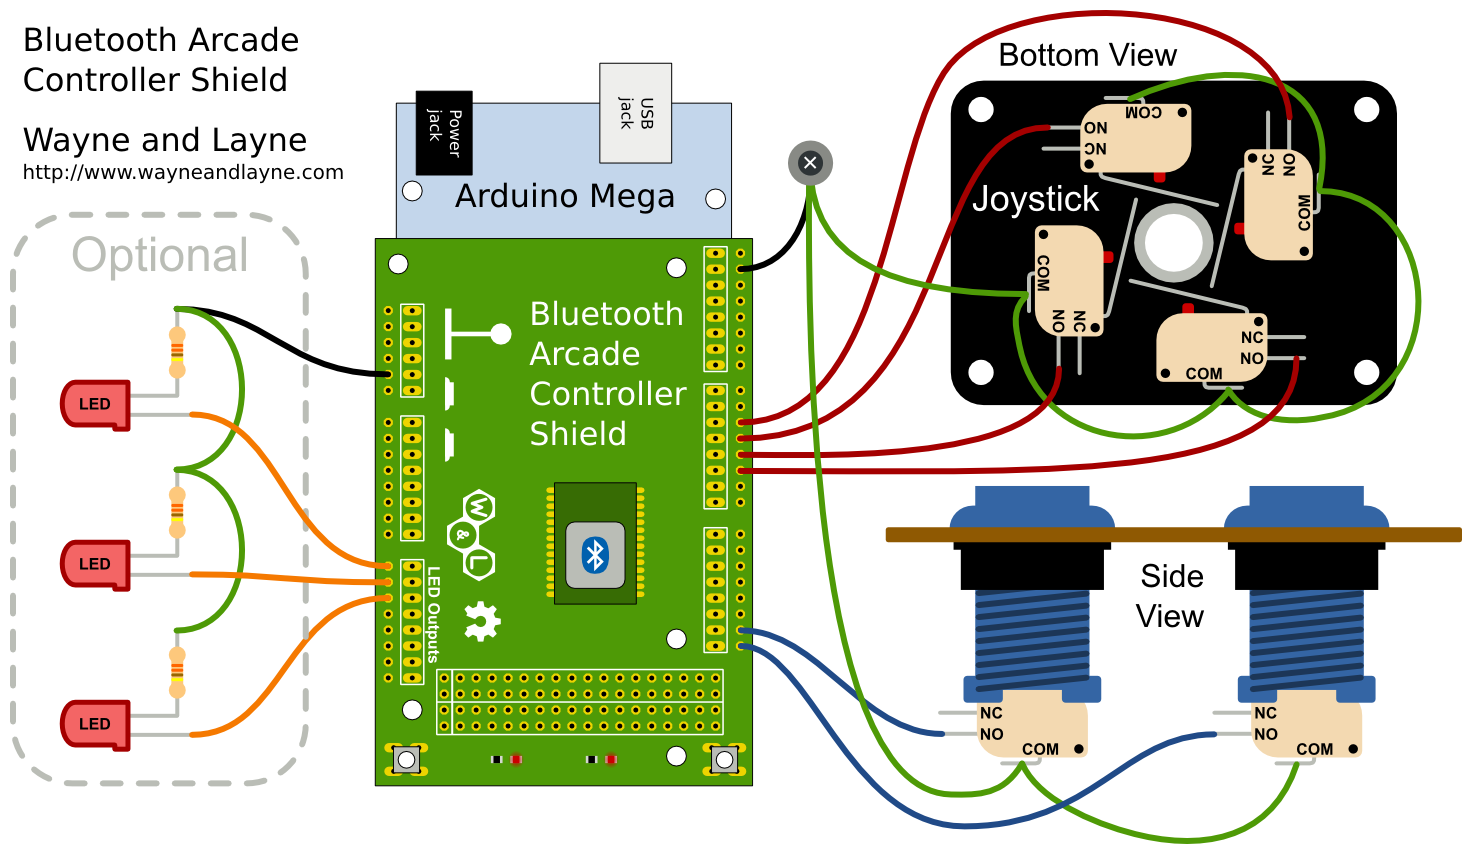 Bluetooth Arcade Controller system-level diagram